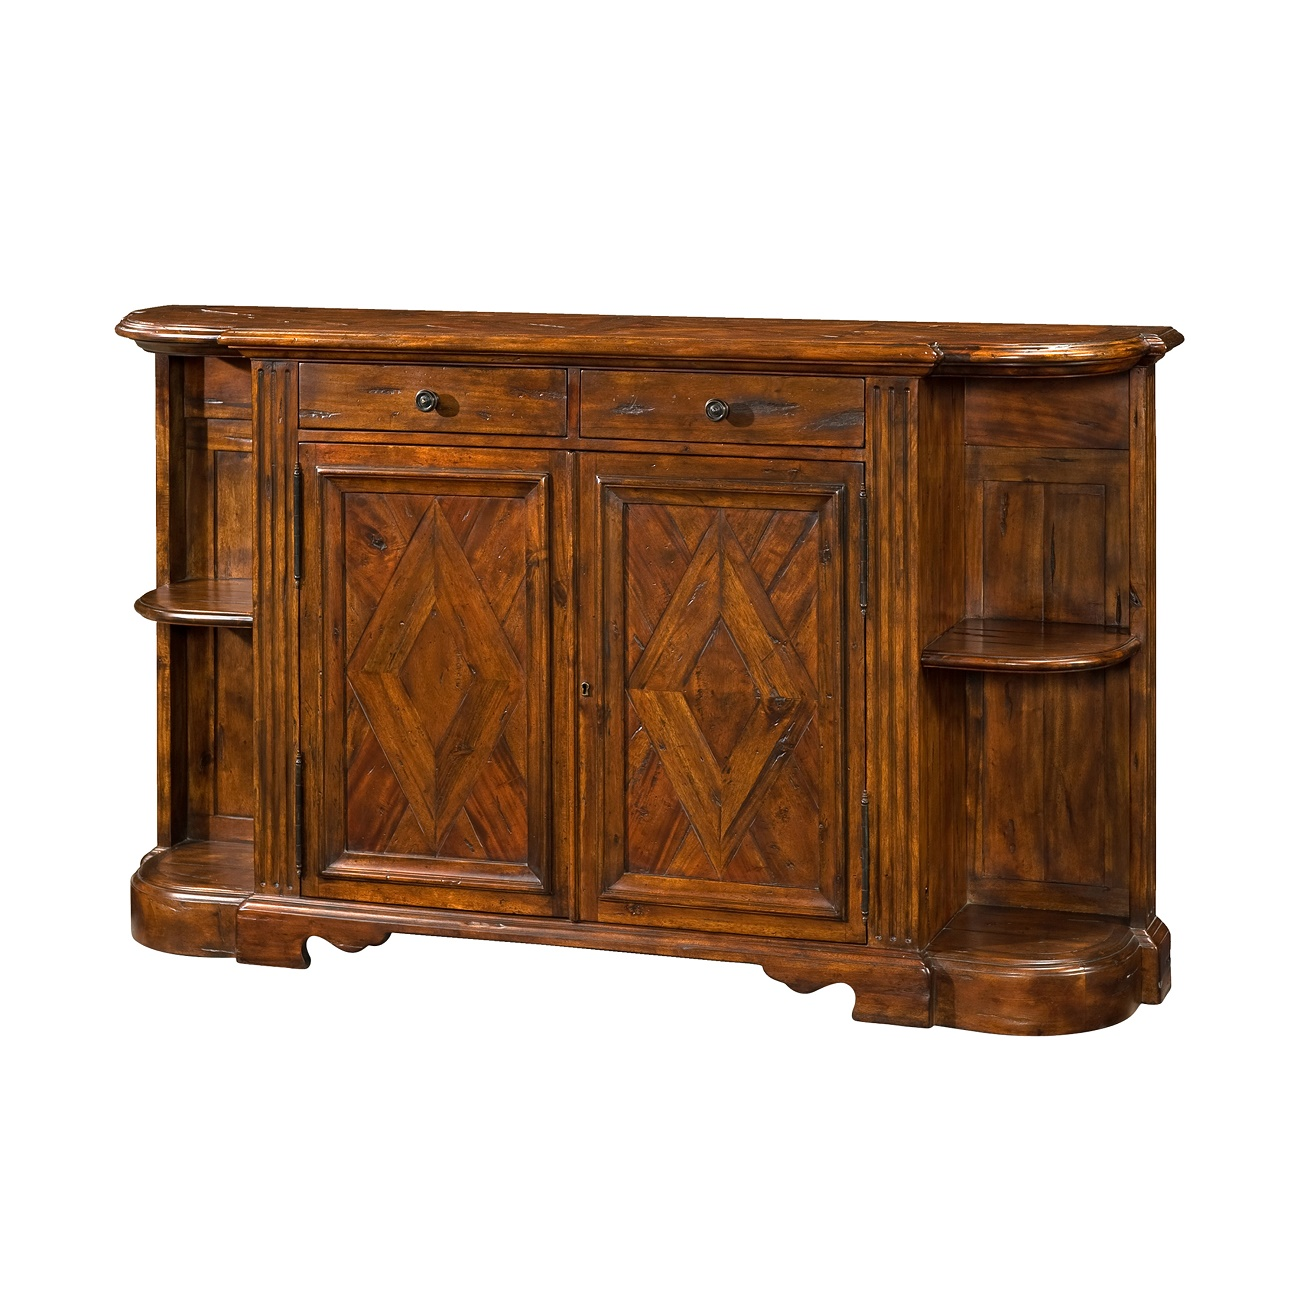 CB61003 Holly Maze Cabinet Theodore Alexander